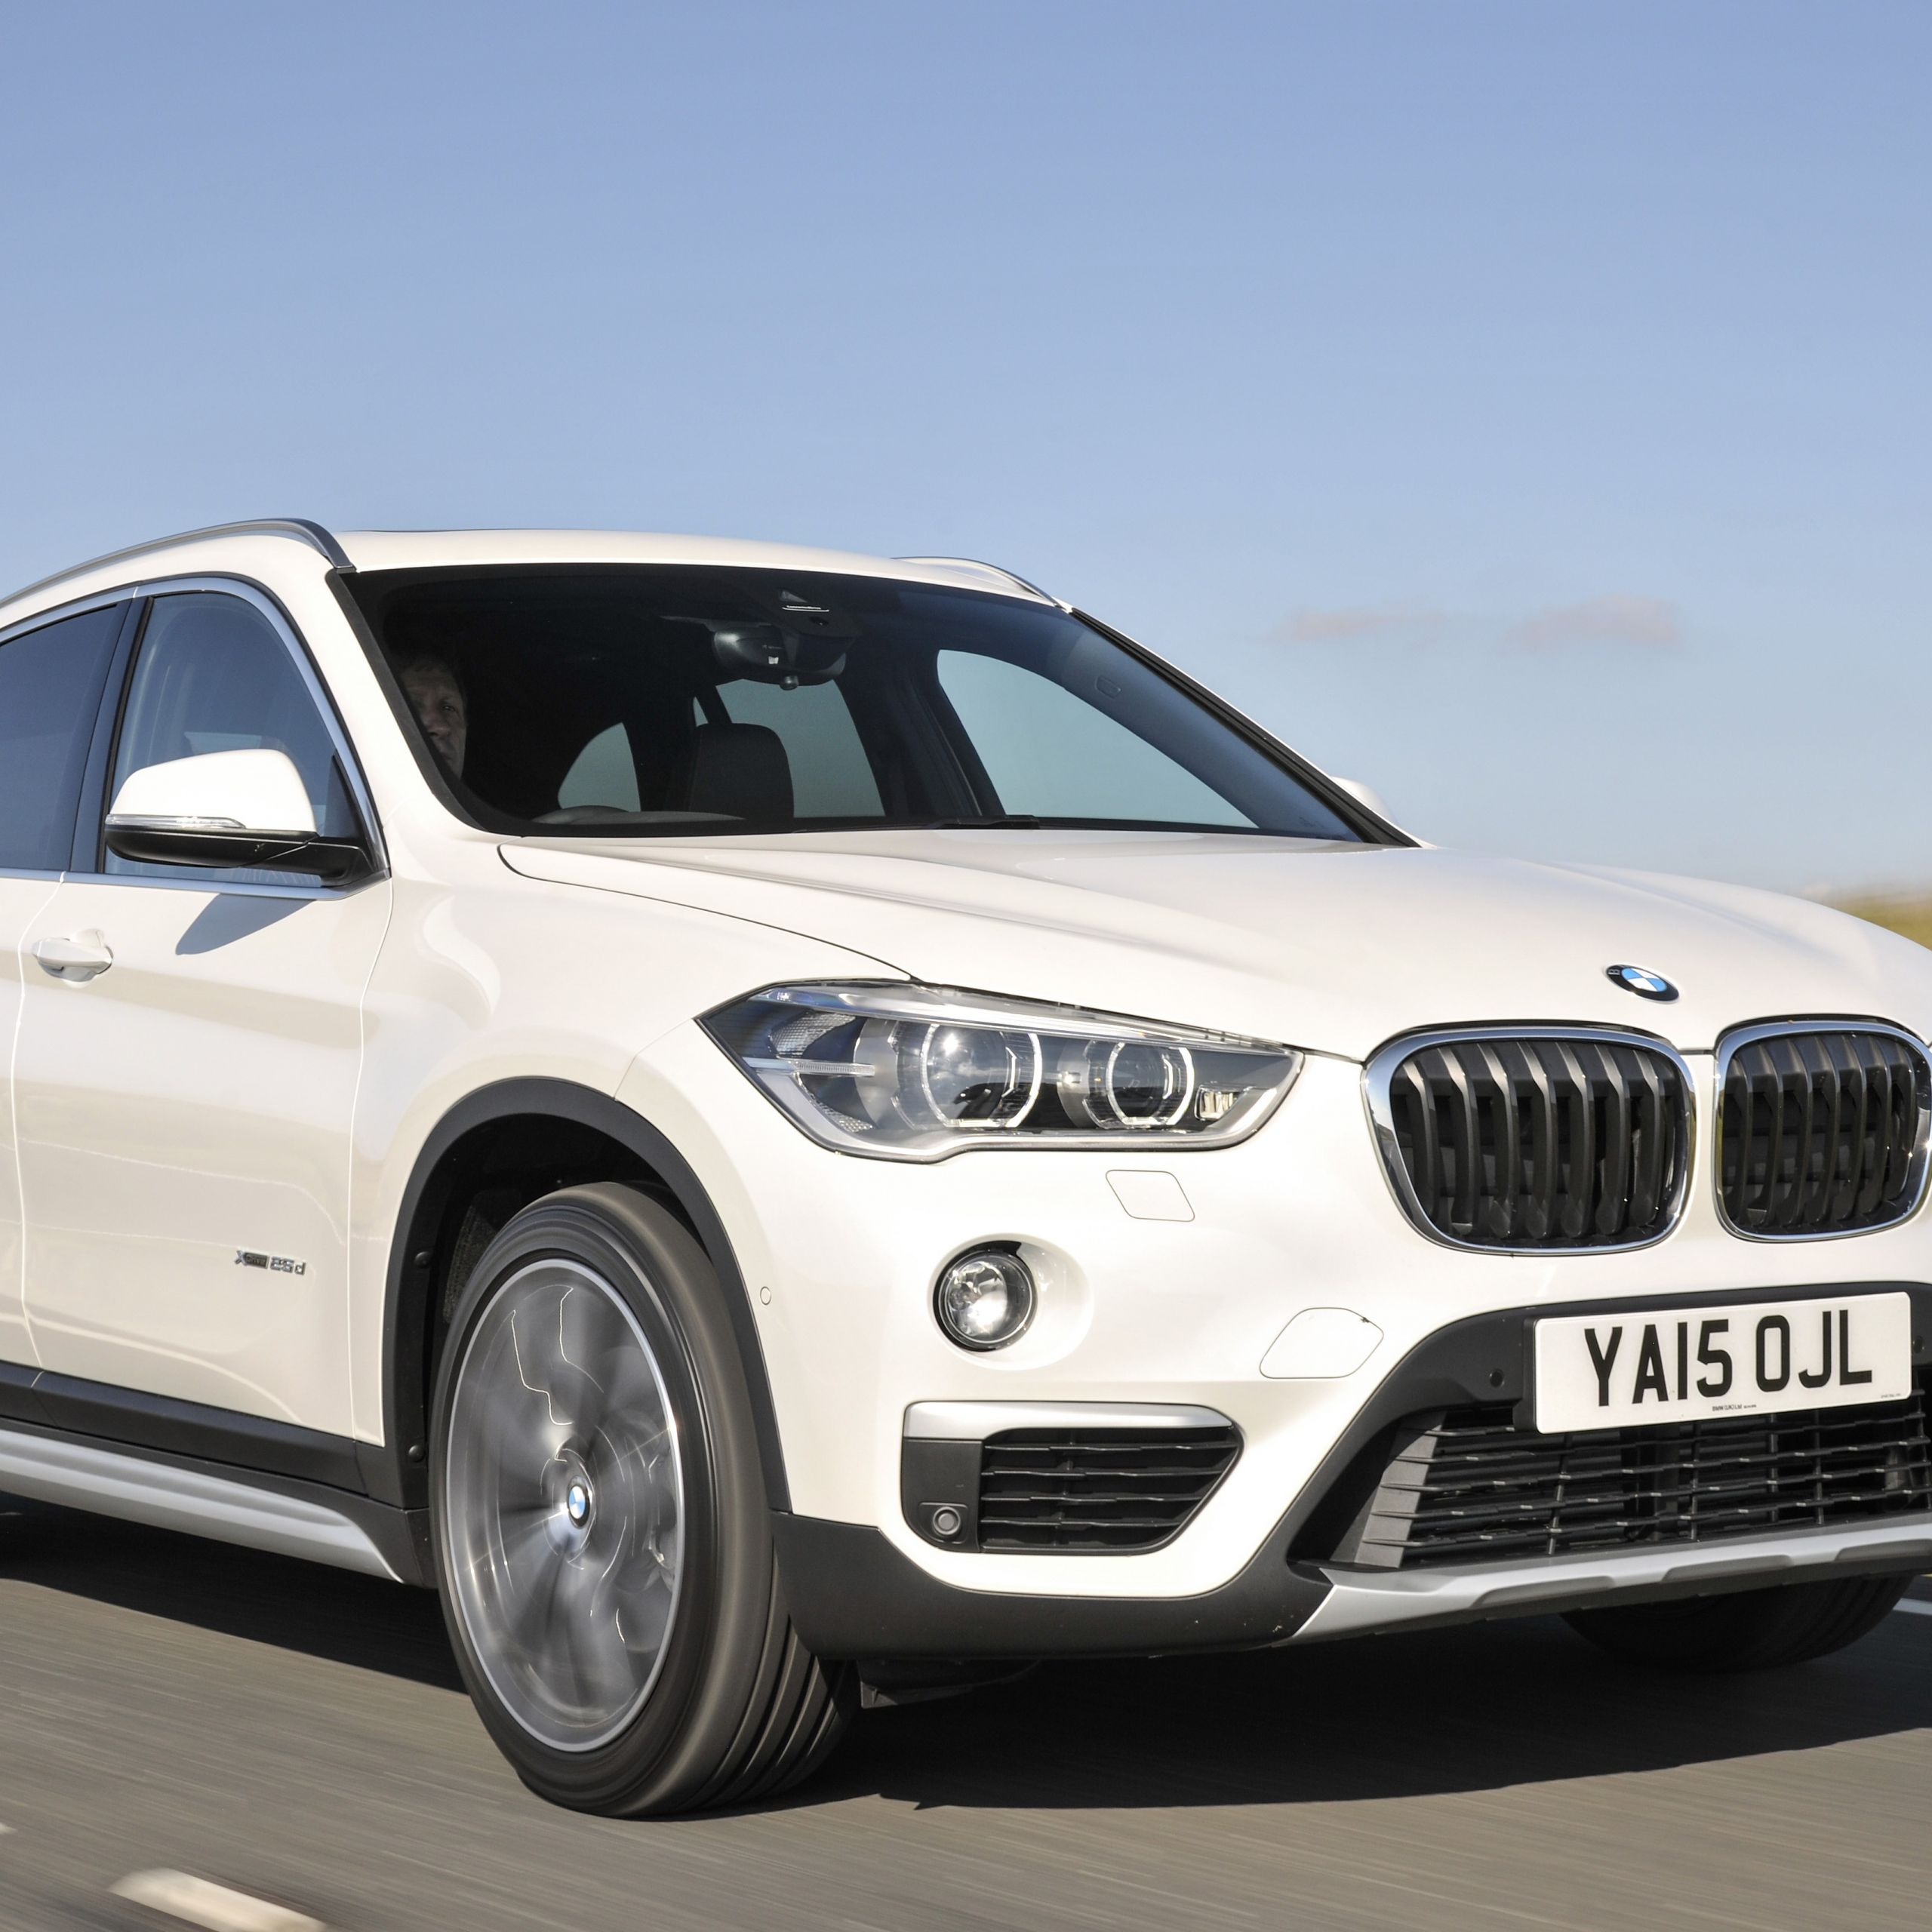 Bmw X1 for Sale Best Of Bmw X1 Review and Buying Guide Best Deals and Prices